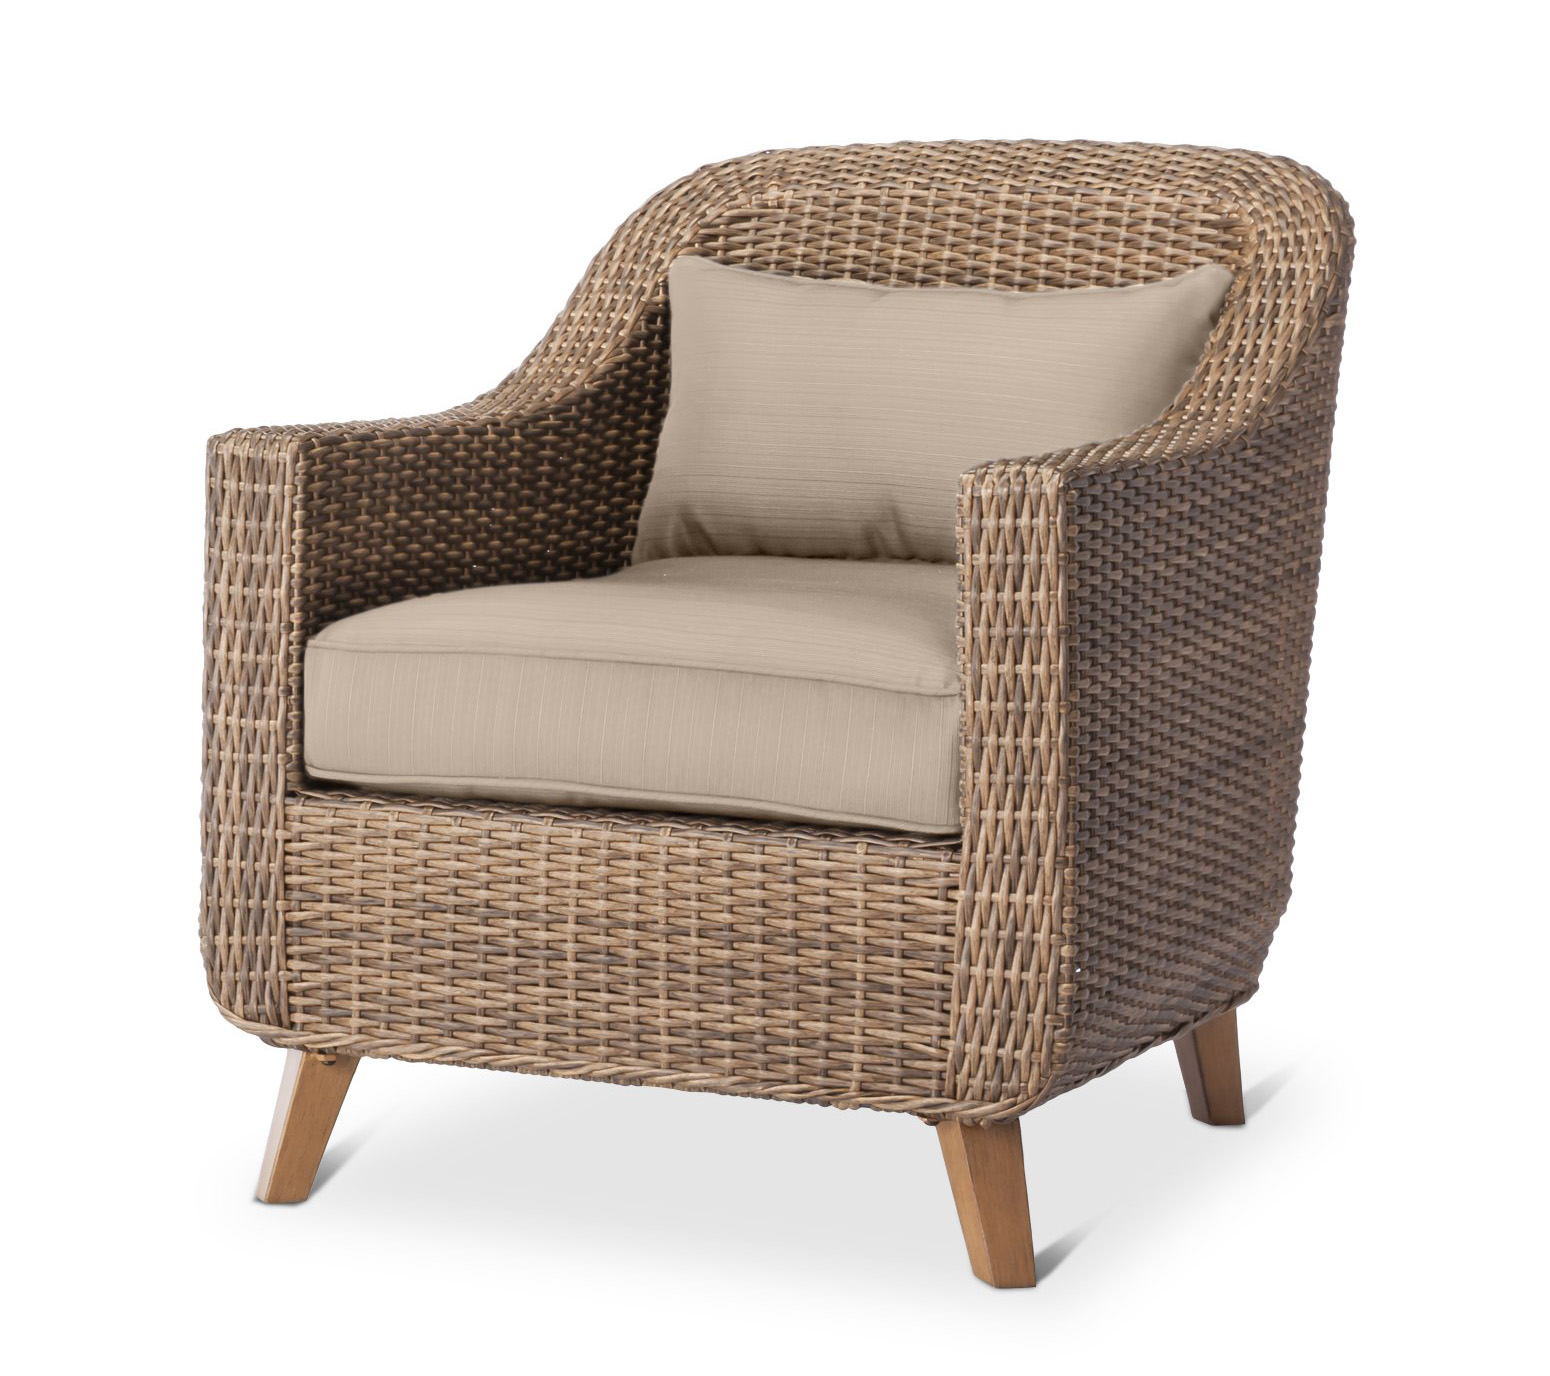 The Mayhew All Weather Wicker Patio Club Chair Comes With Cushions In  Seafoam, Tan,